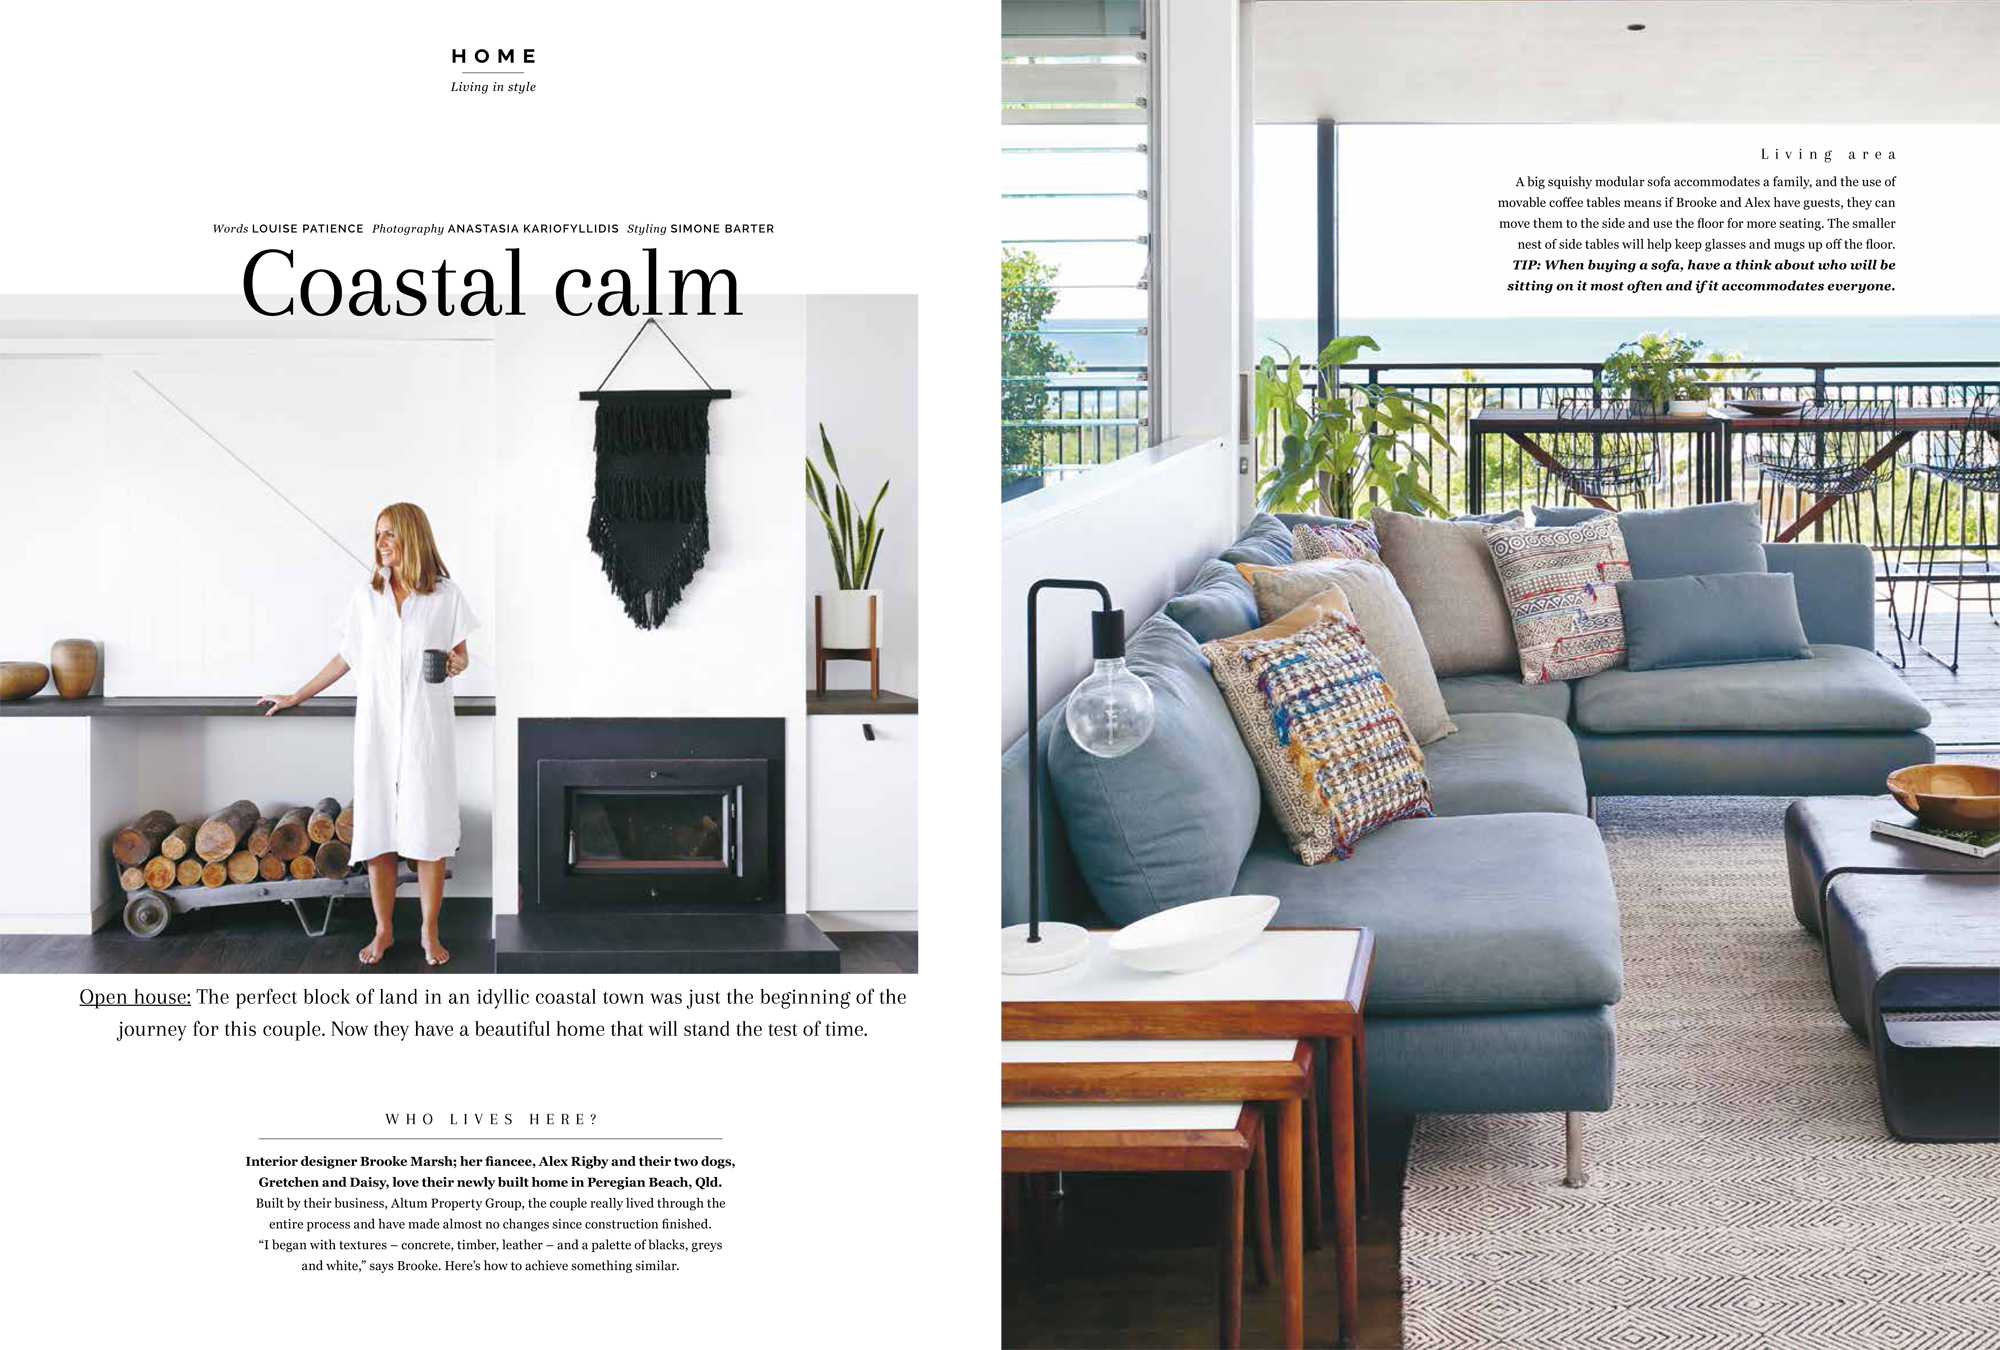 Home Life Magazine styled by Simone Barter-1.jpg